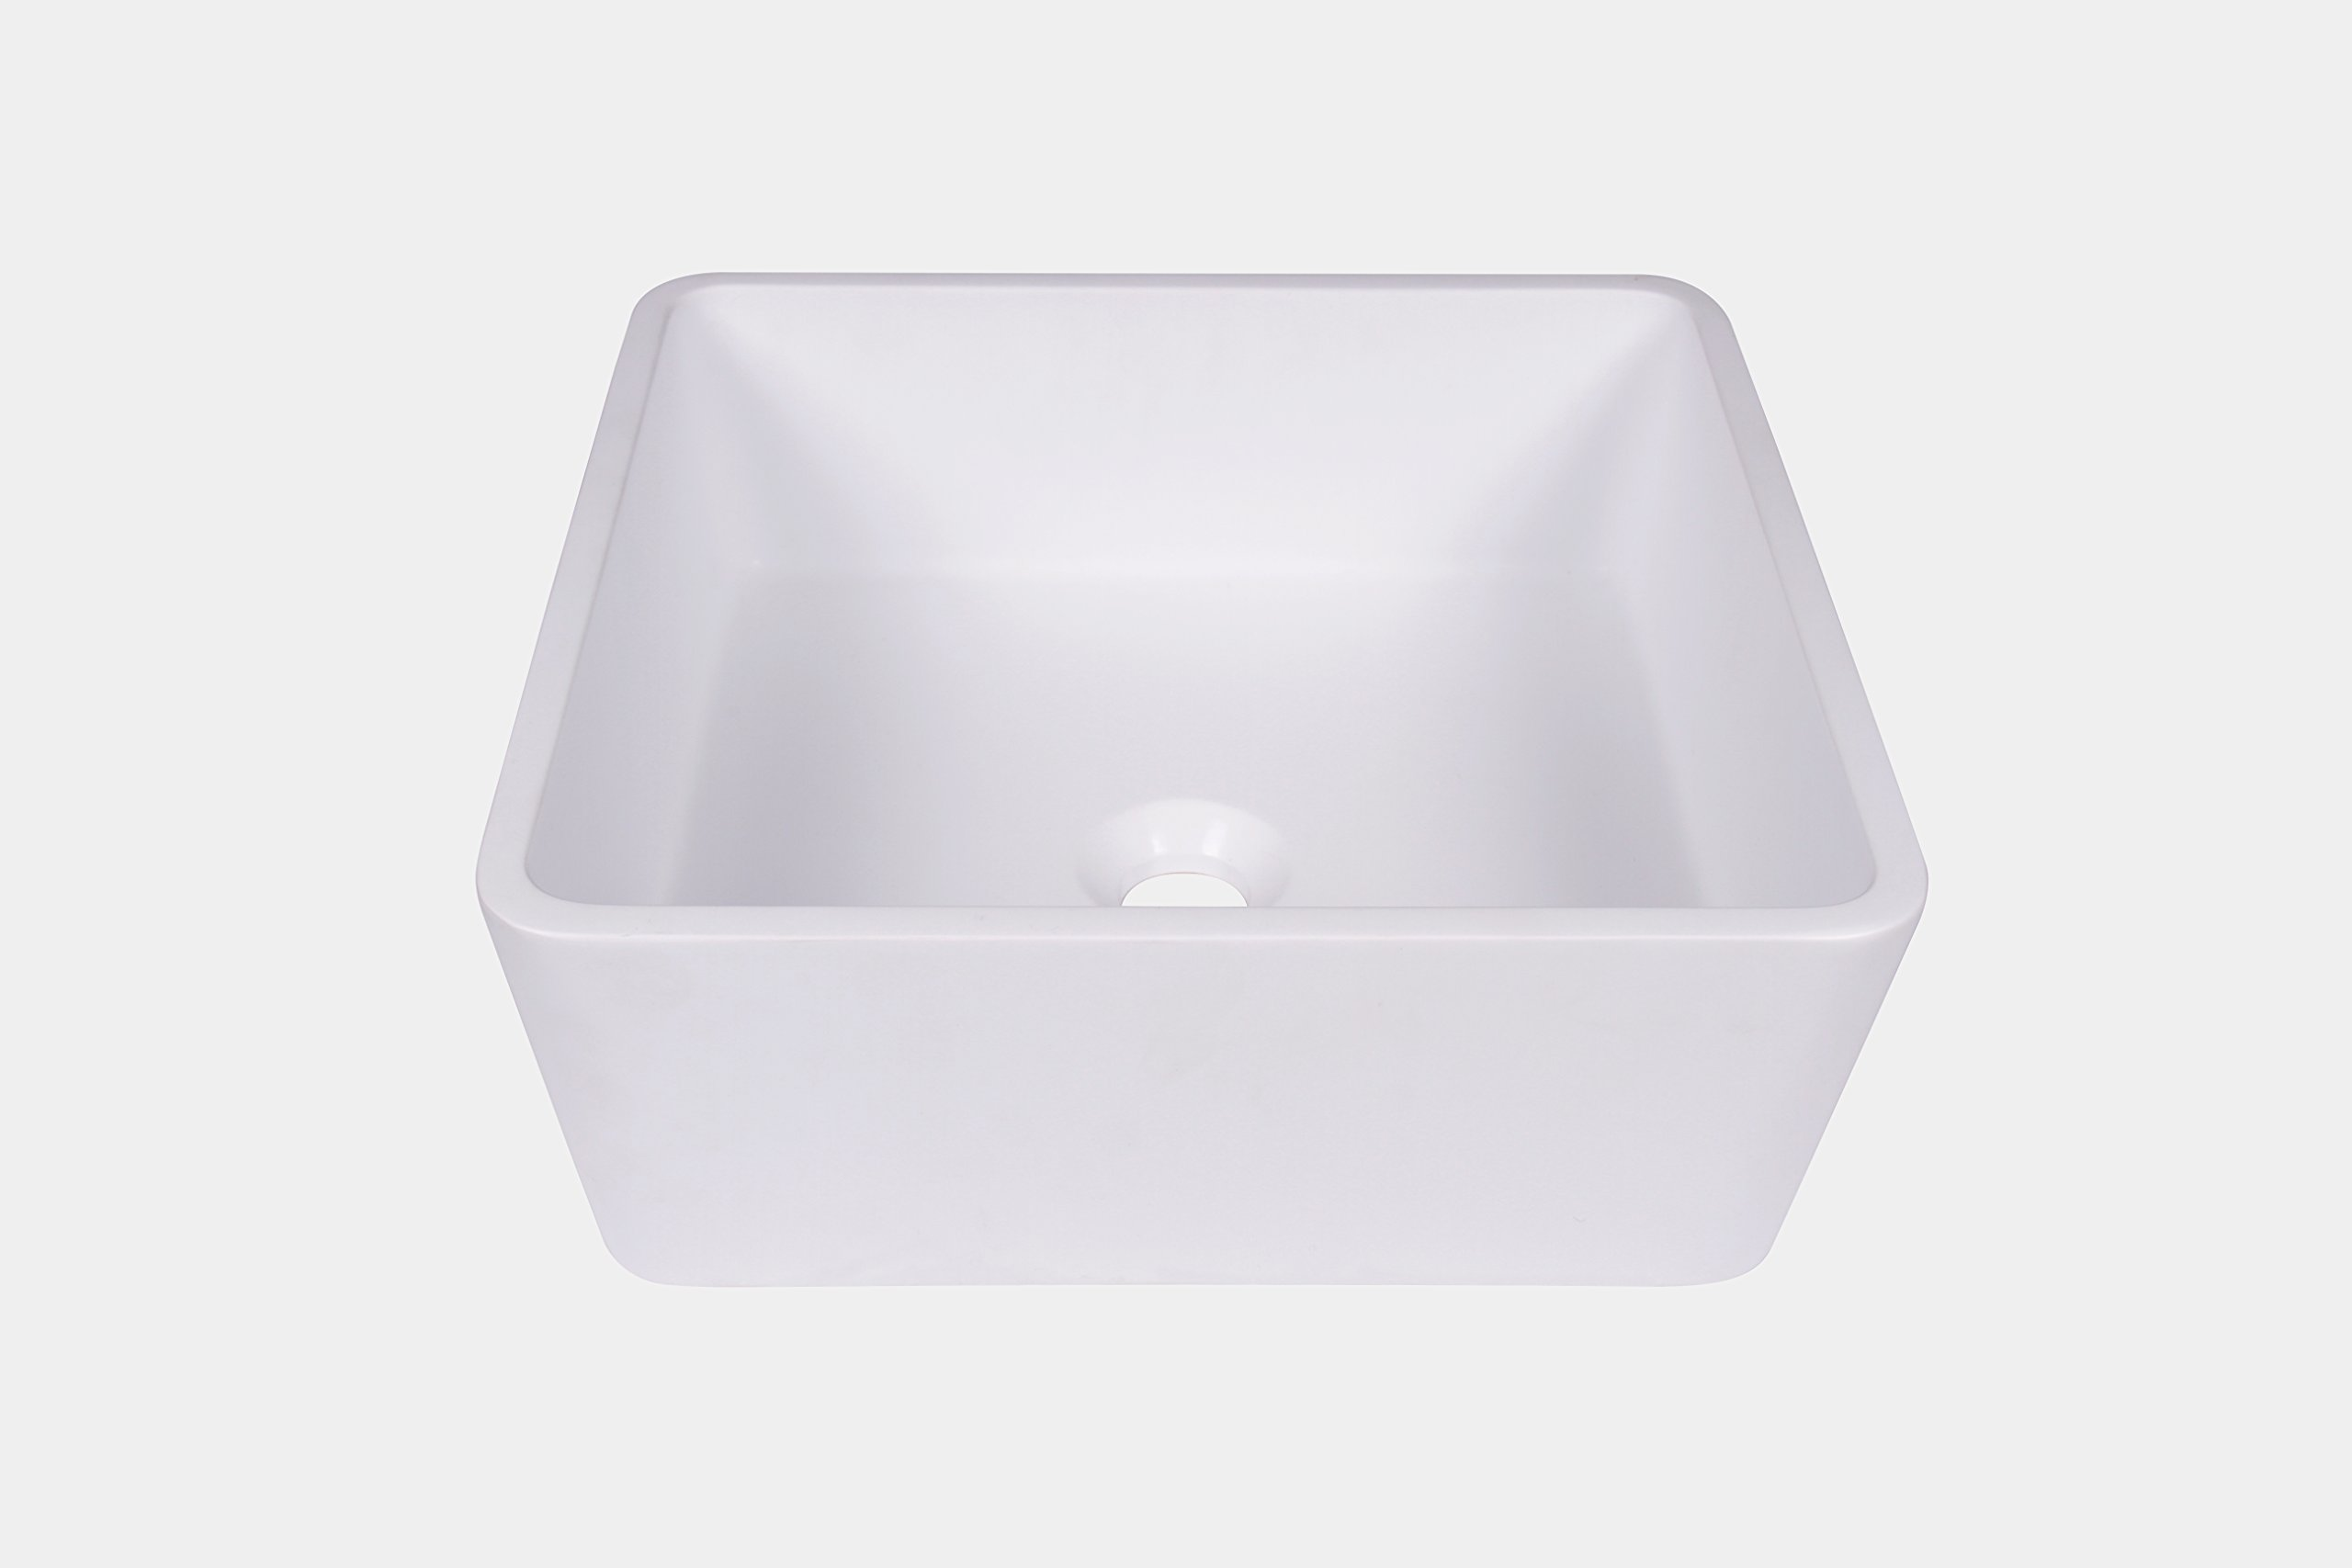 Jano Matte White Square Resin Vessel Bathroom Sink with Pop-up Drain